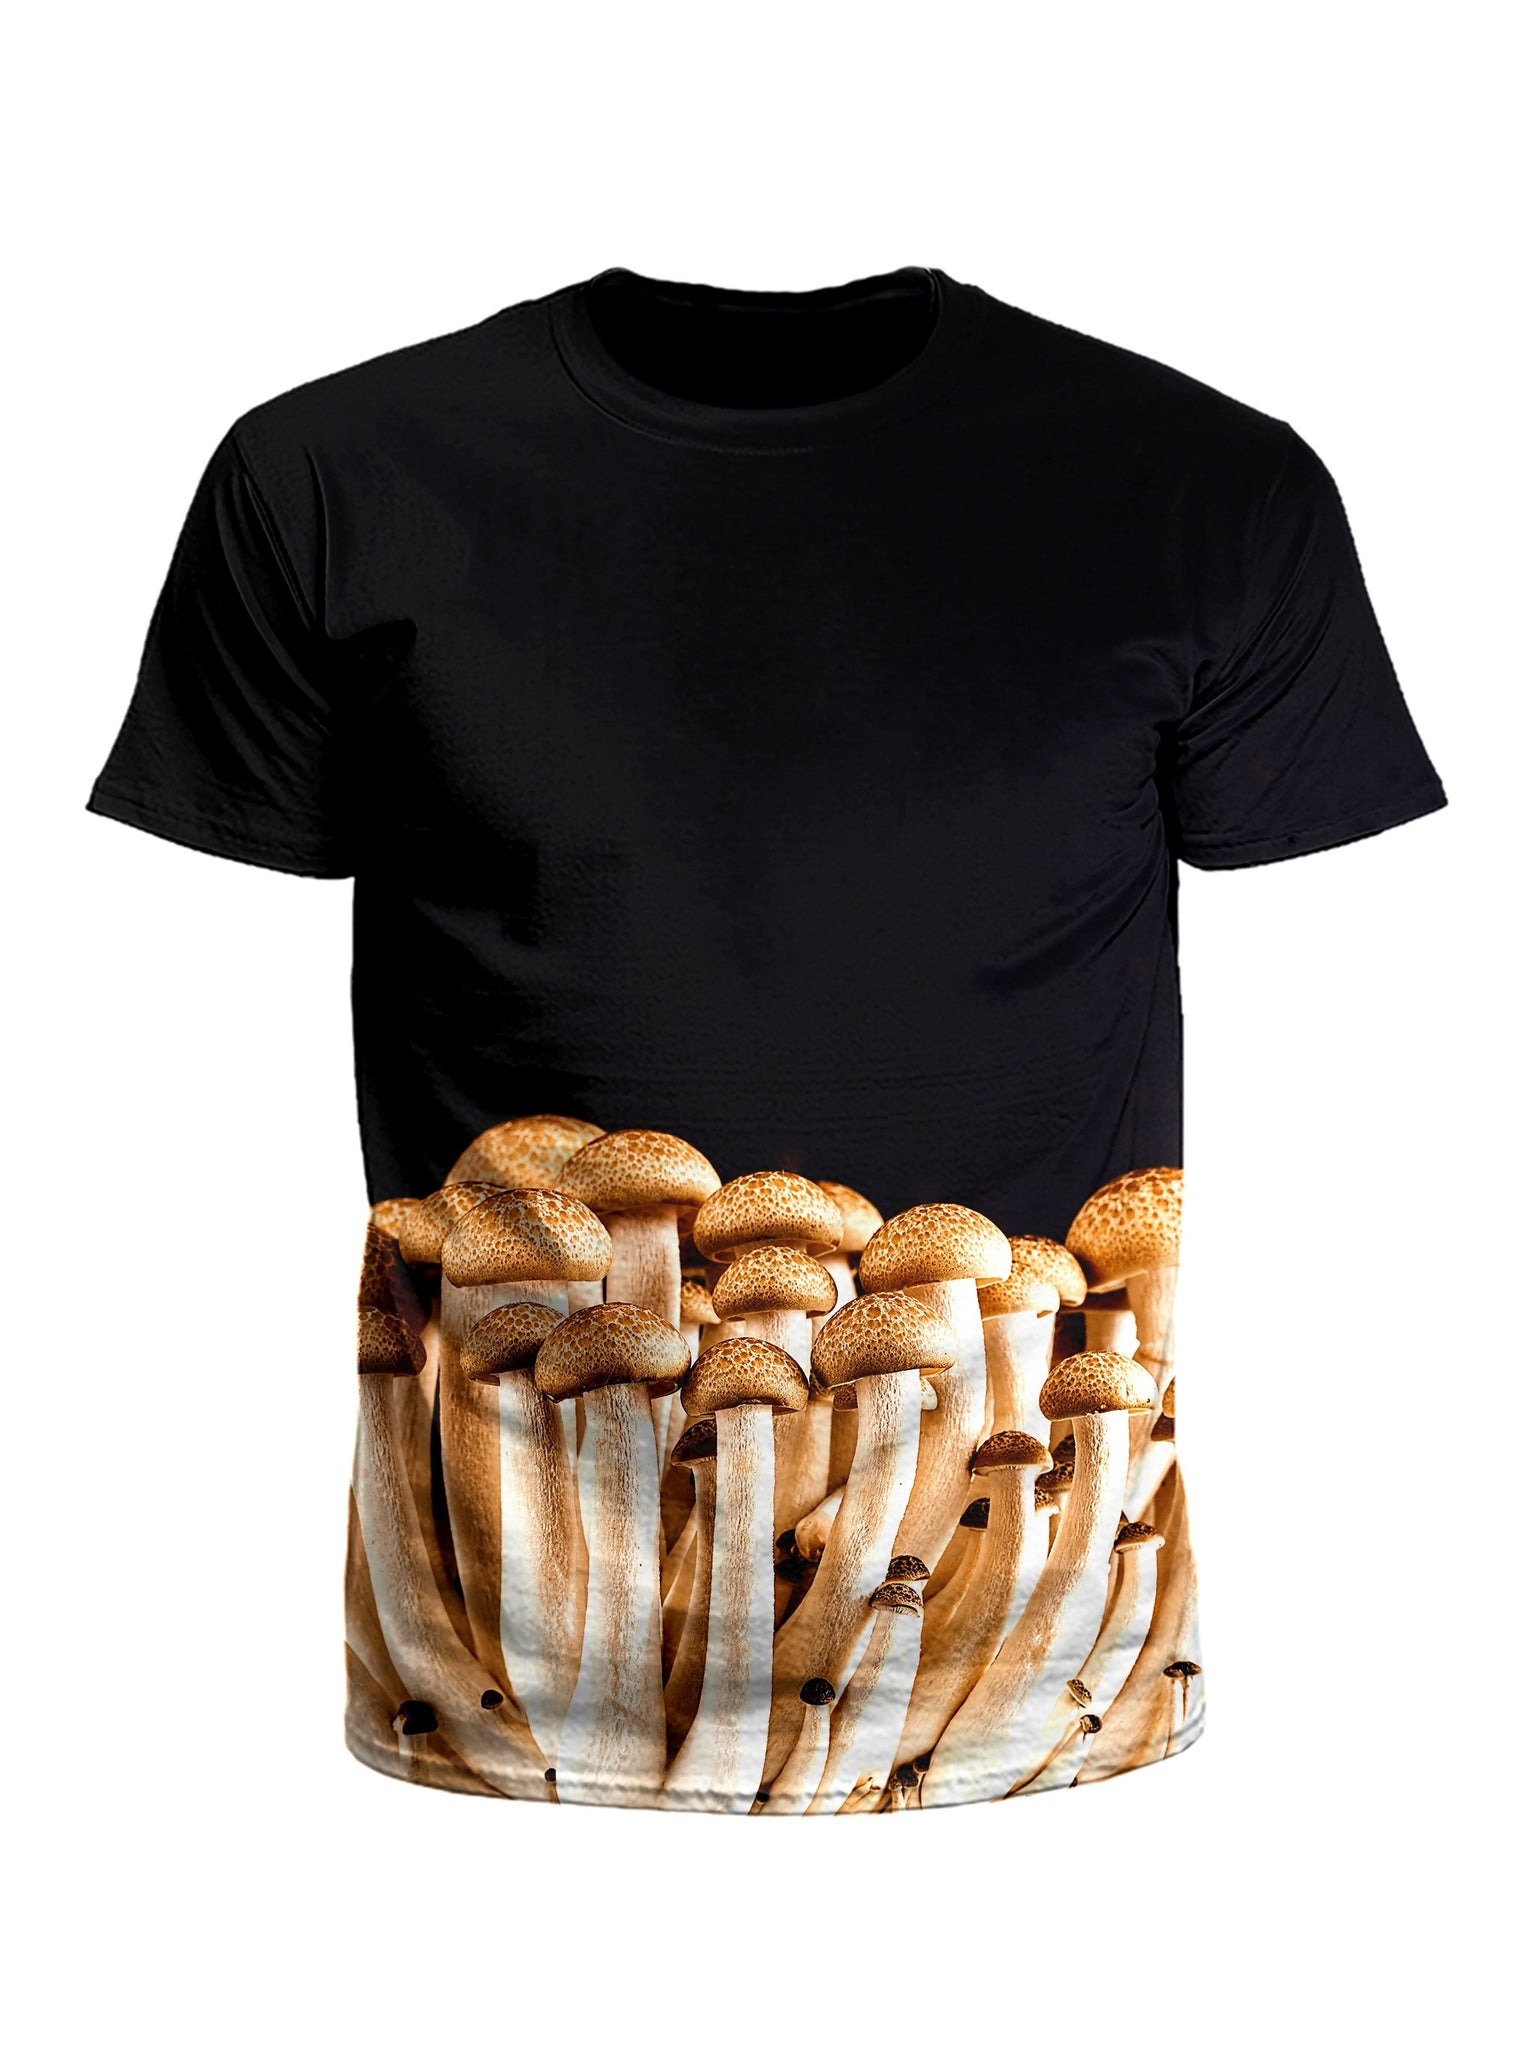 Men's black & brown mushroom unisex t-shirt front view.